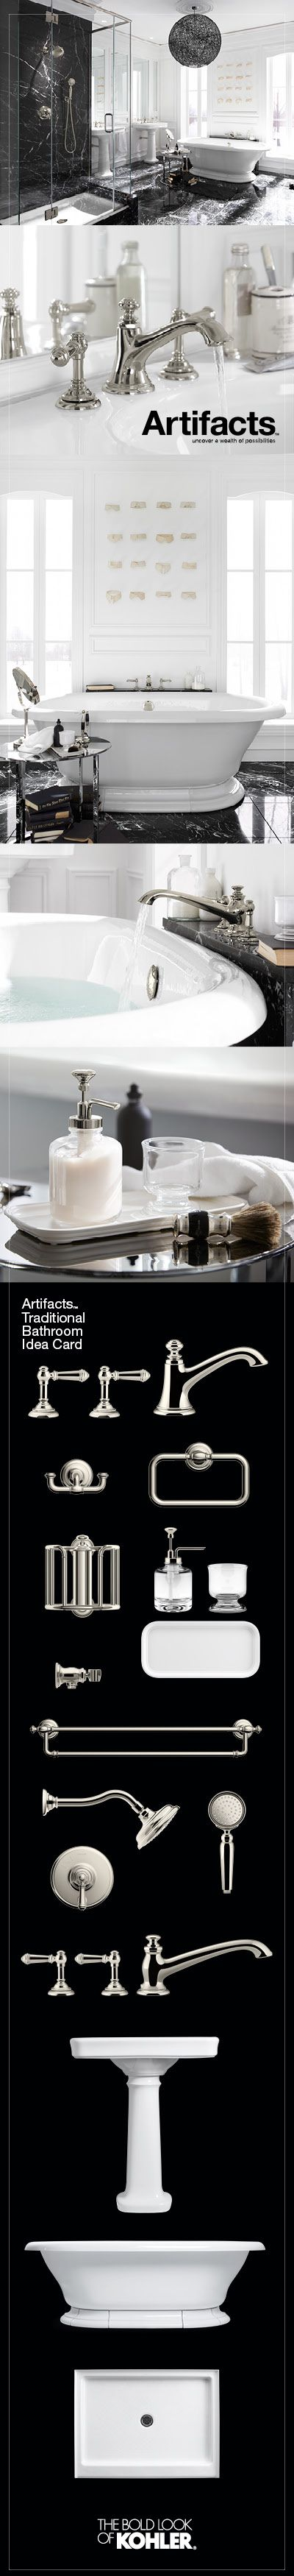 Create A Look All Your Own With The Kohler Artifacts Collection Timeless And Classic In Its